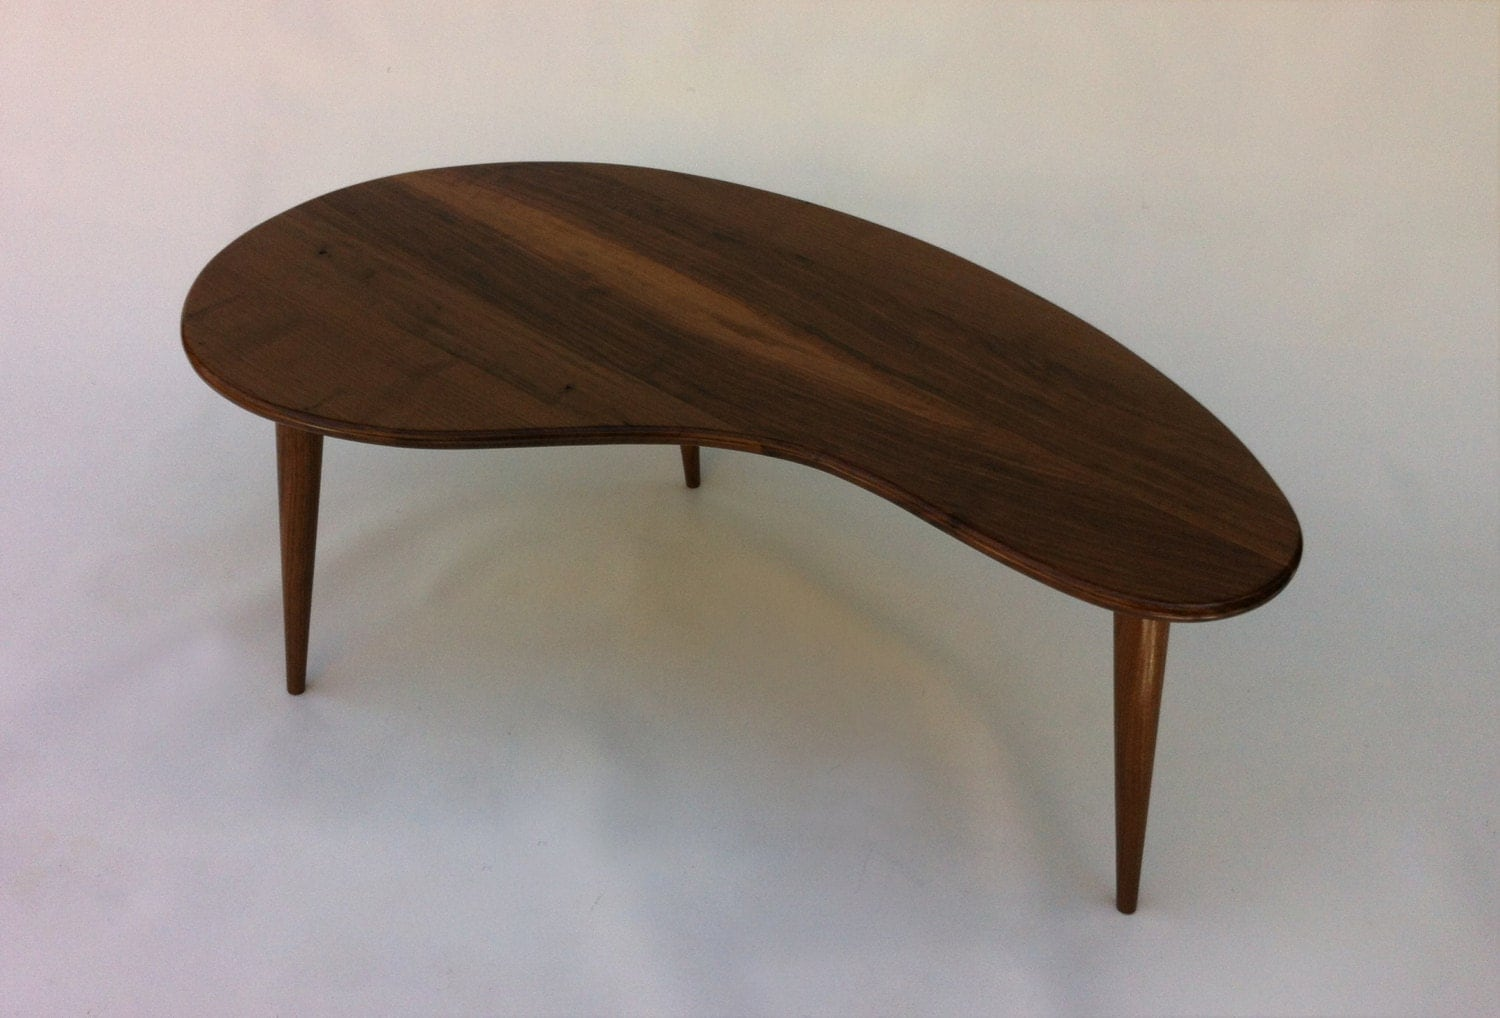 Mcm coffee table solid walnut kidney bean cocktail table zoom geotapseo Choice Image